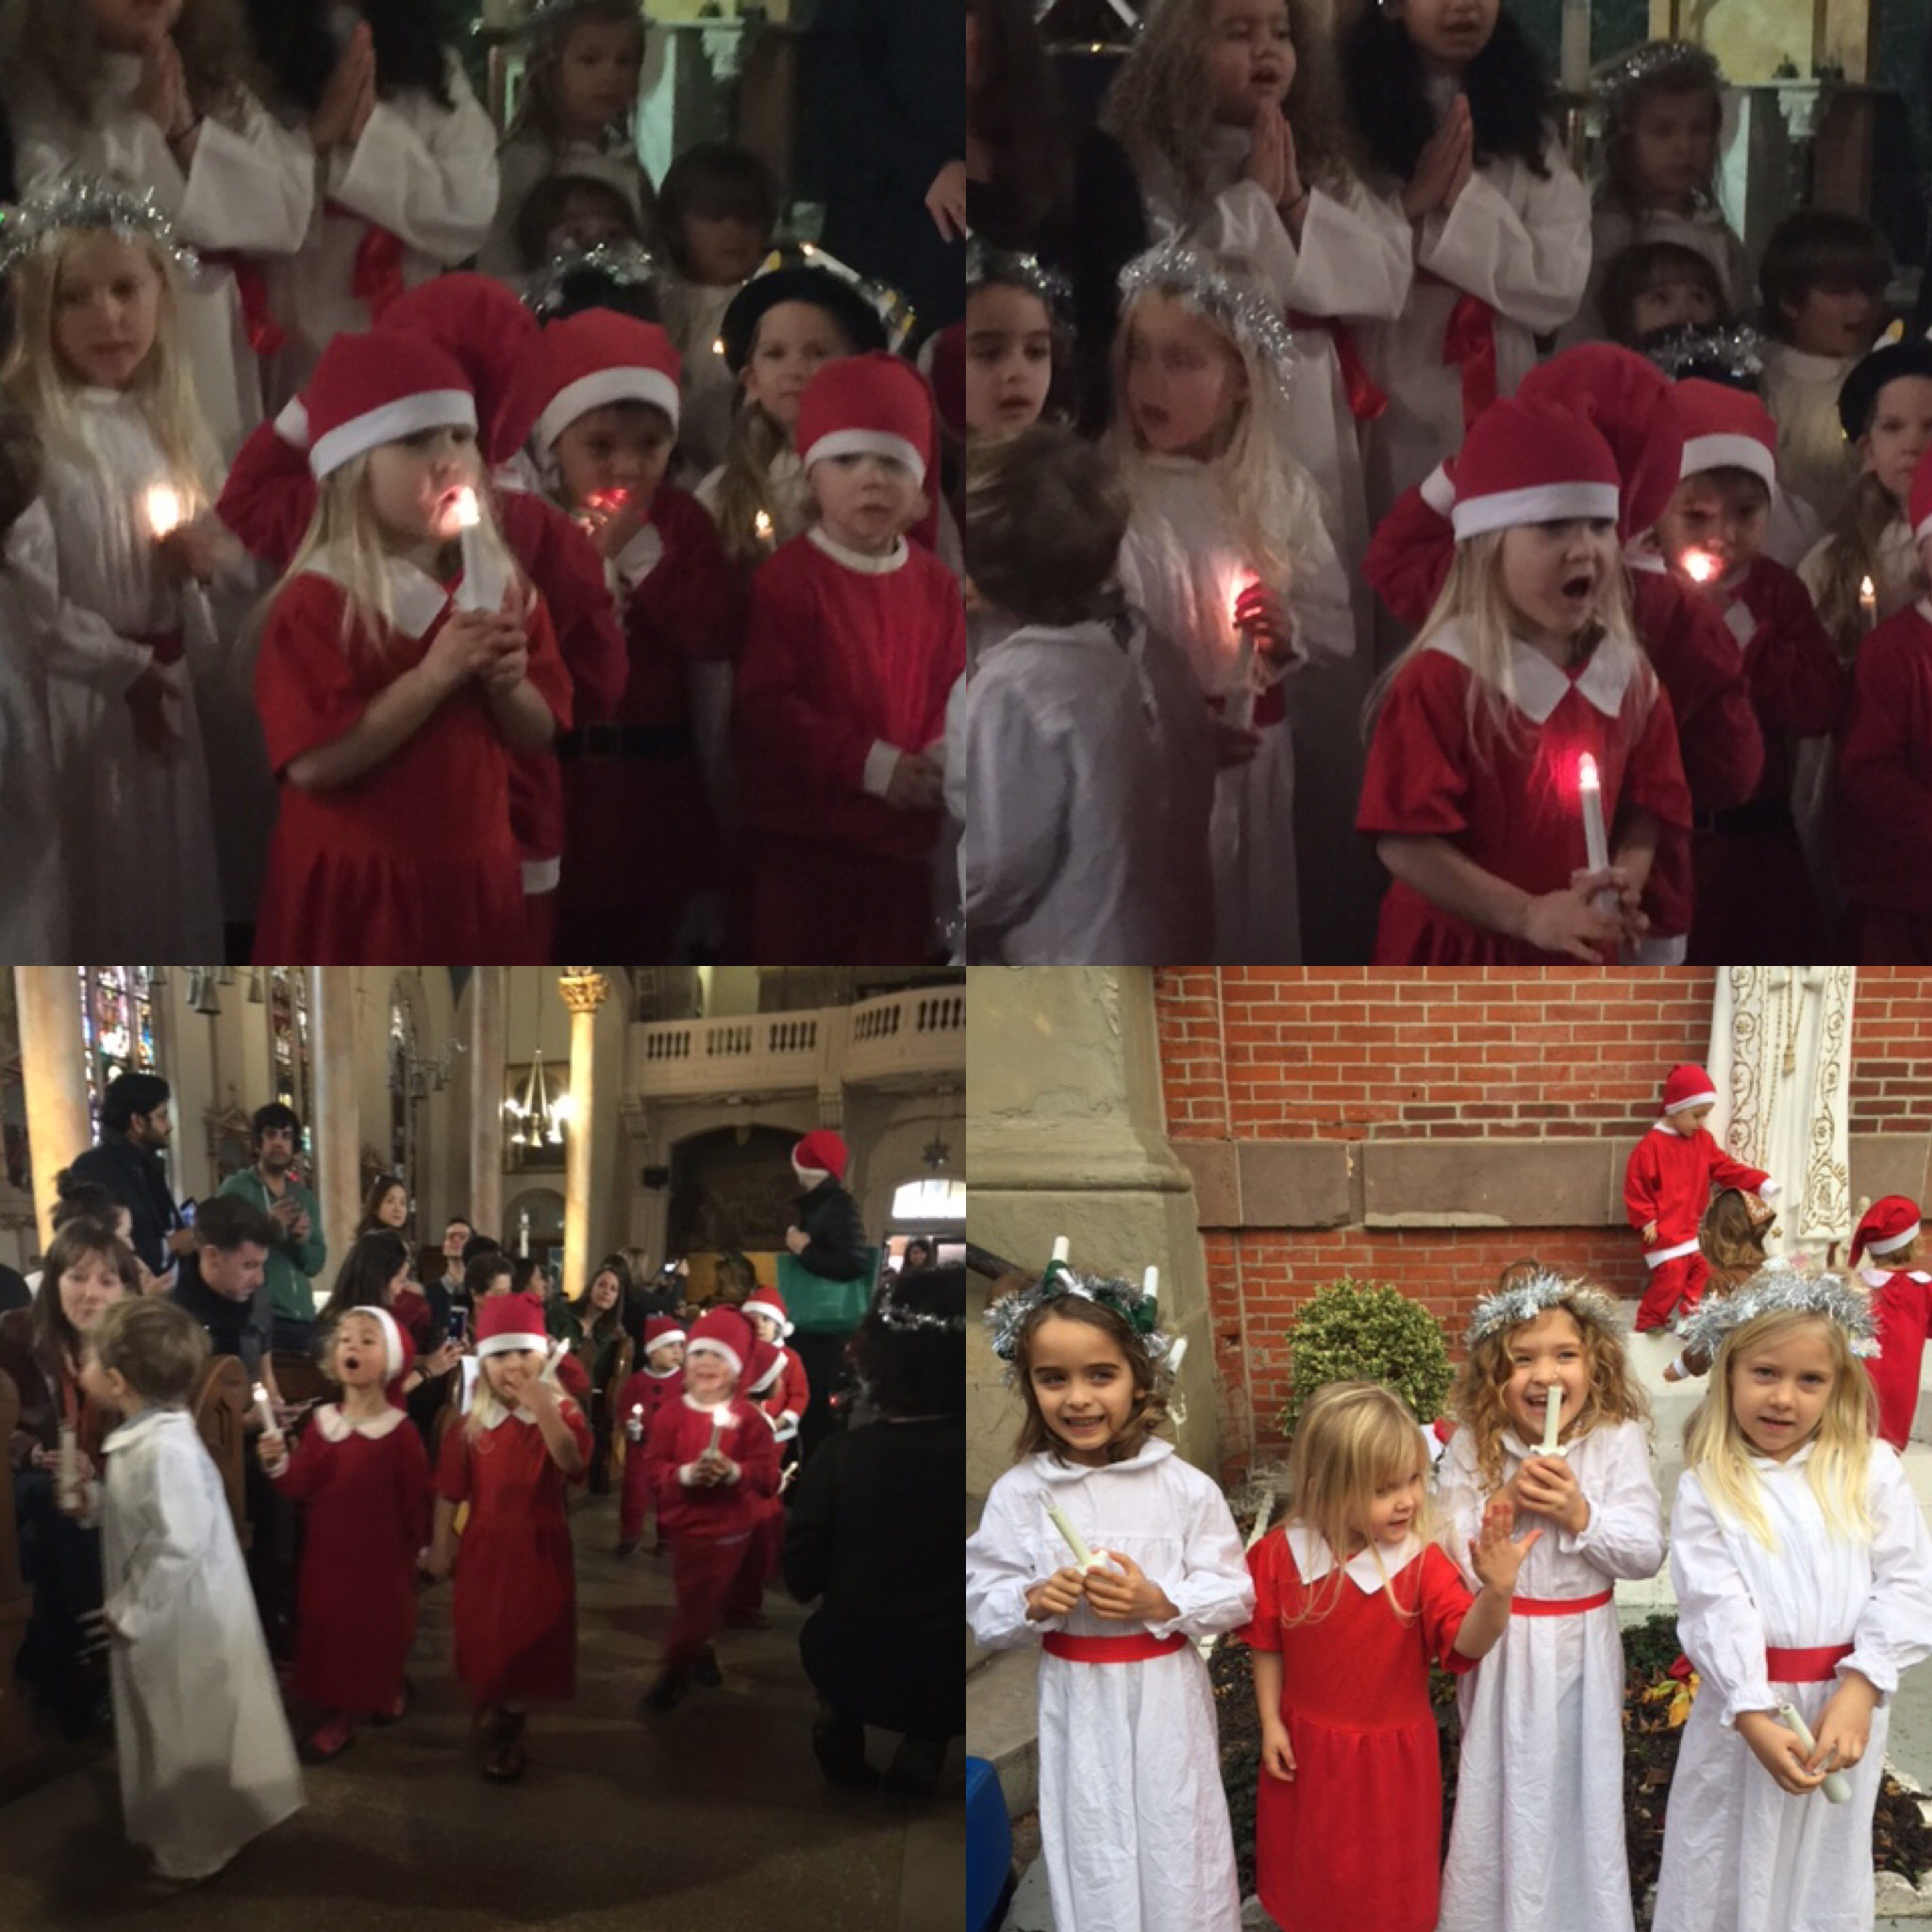 Annual Lucia Celebration at St. Michael's Church of St Jude in Jersey City